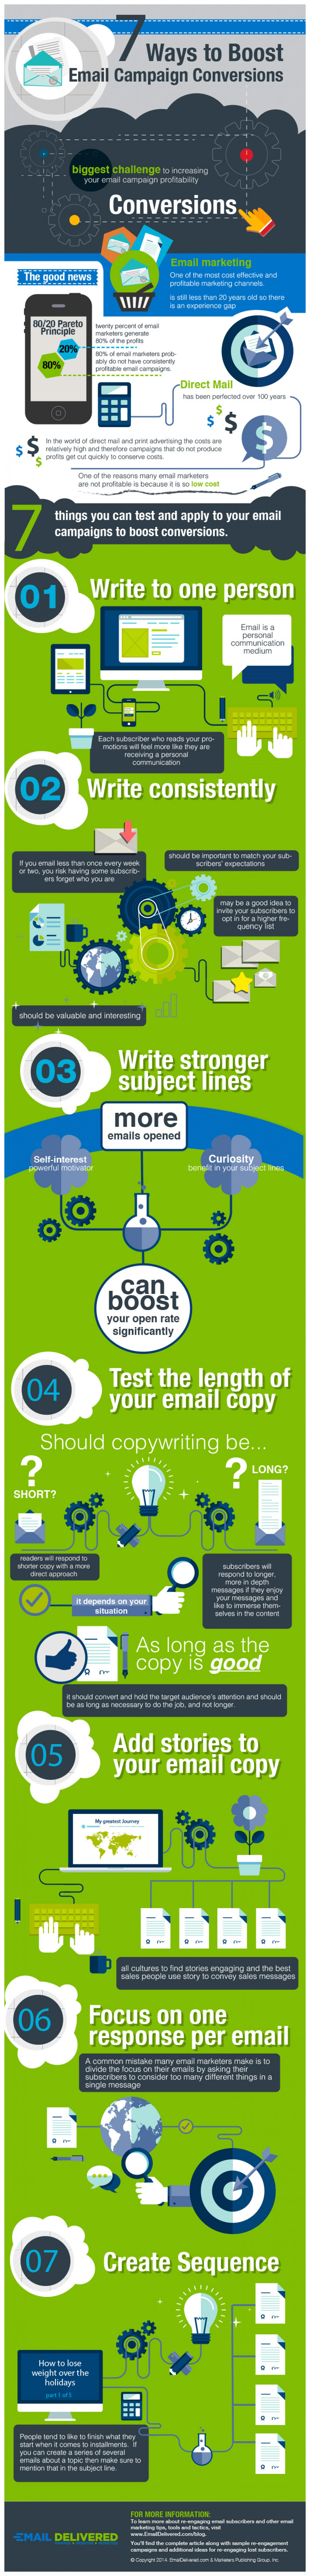 7 Ways to Boost Email Campaign Conversions Infographic